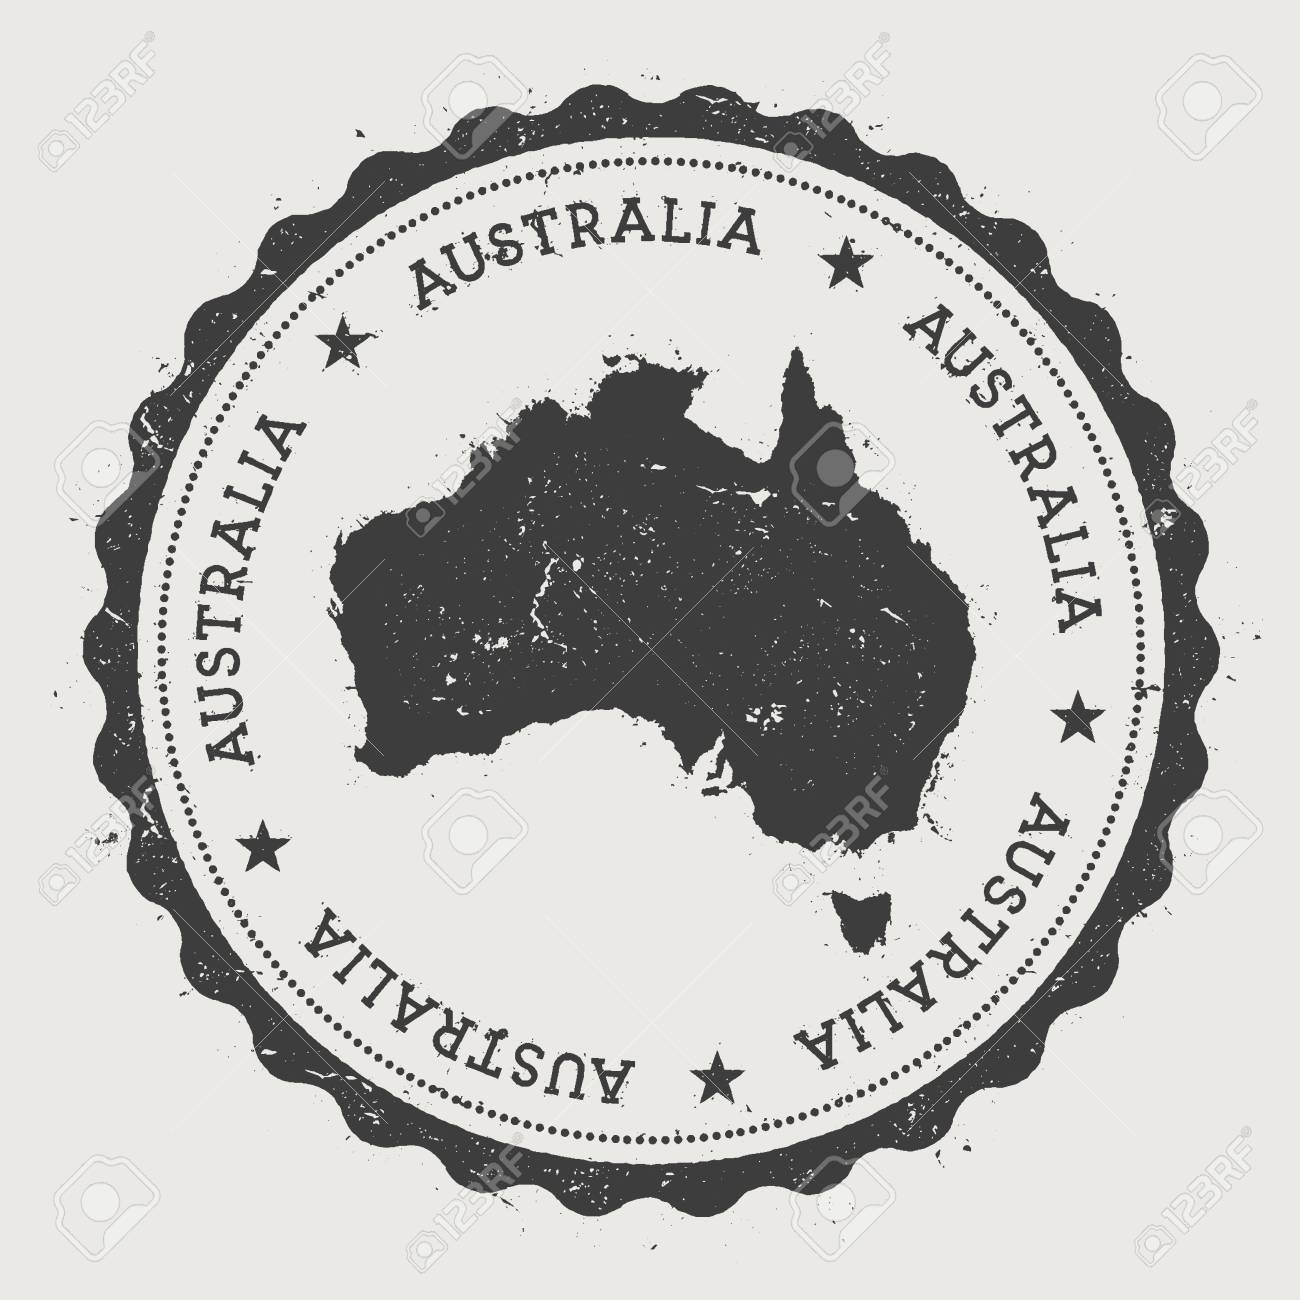 Australia Hipster Round Rubber Stamp With Country Map Vintage Passport Circular Text And